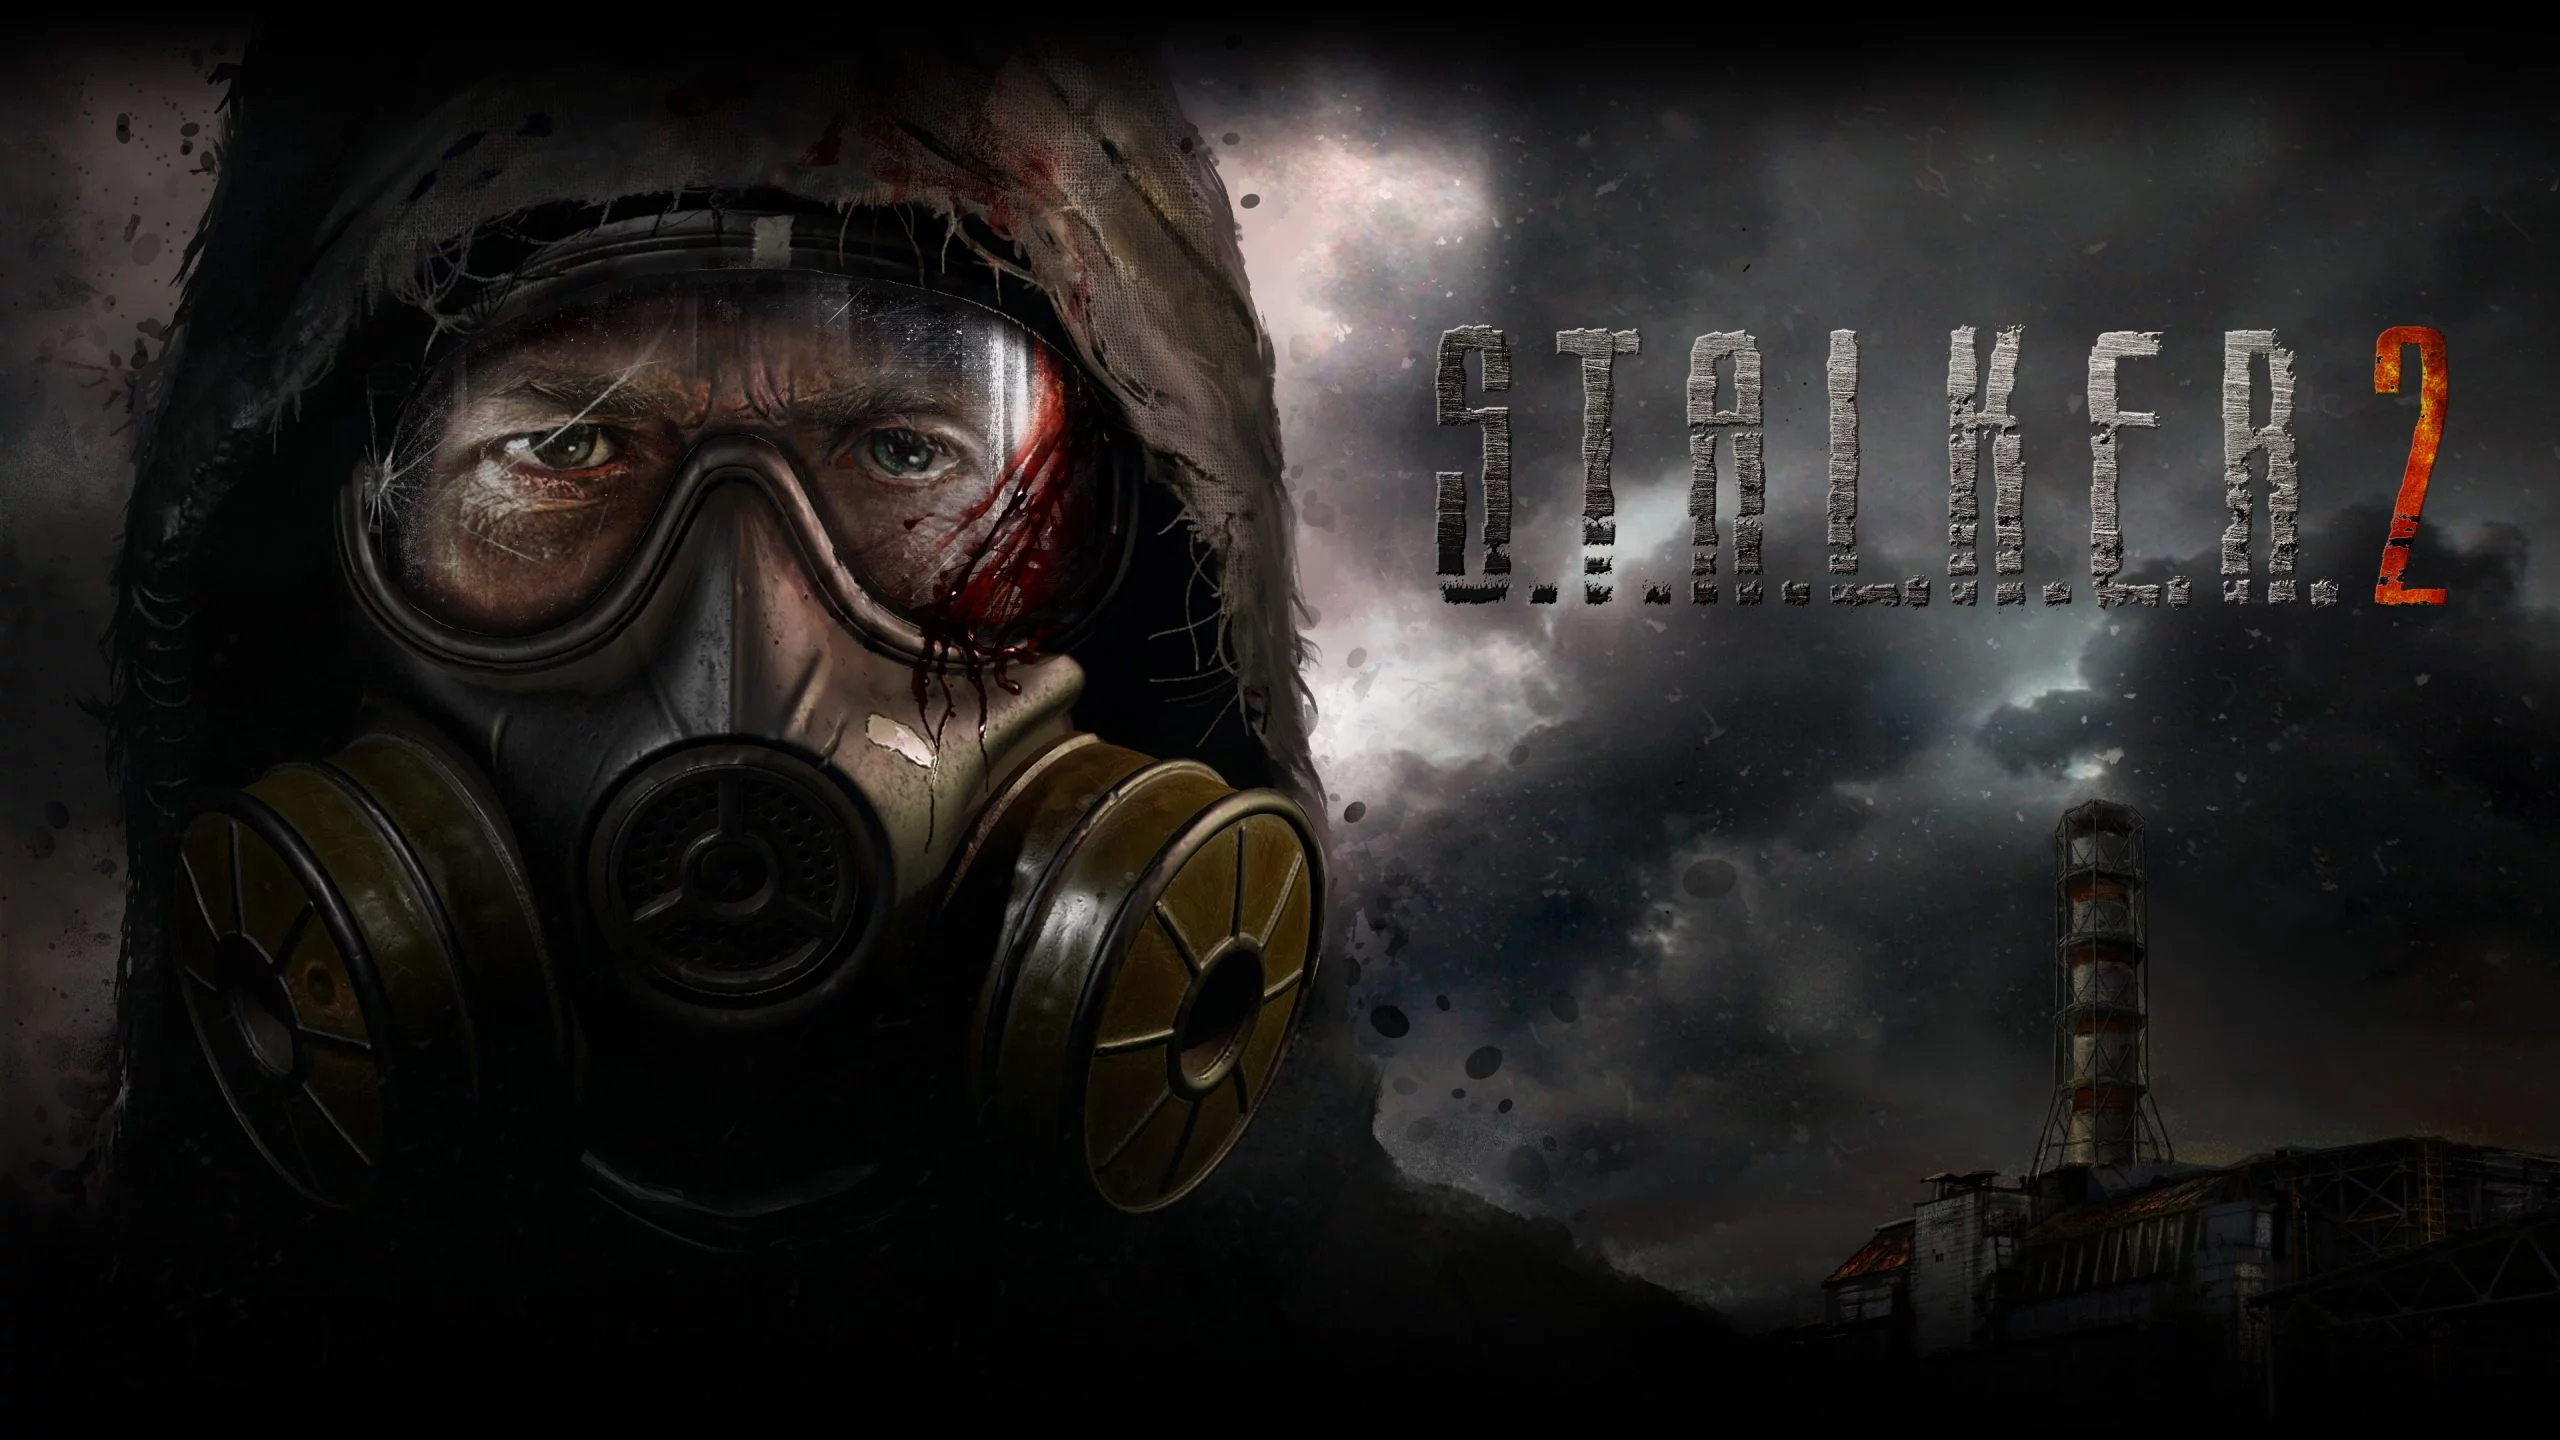 stalker-2-coming-to-xbox-game-pass.jpg